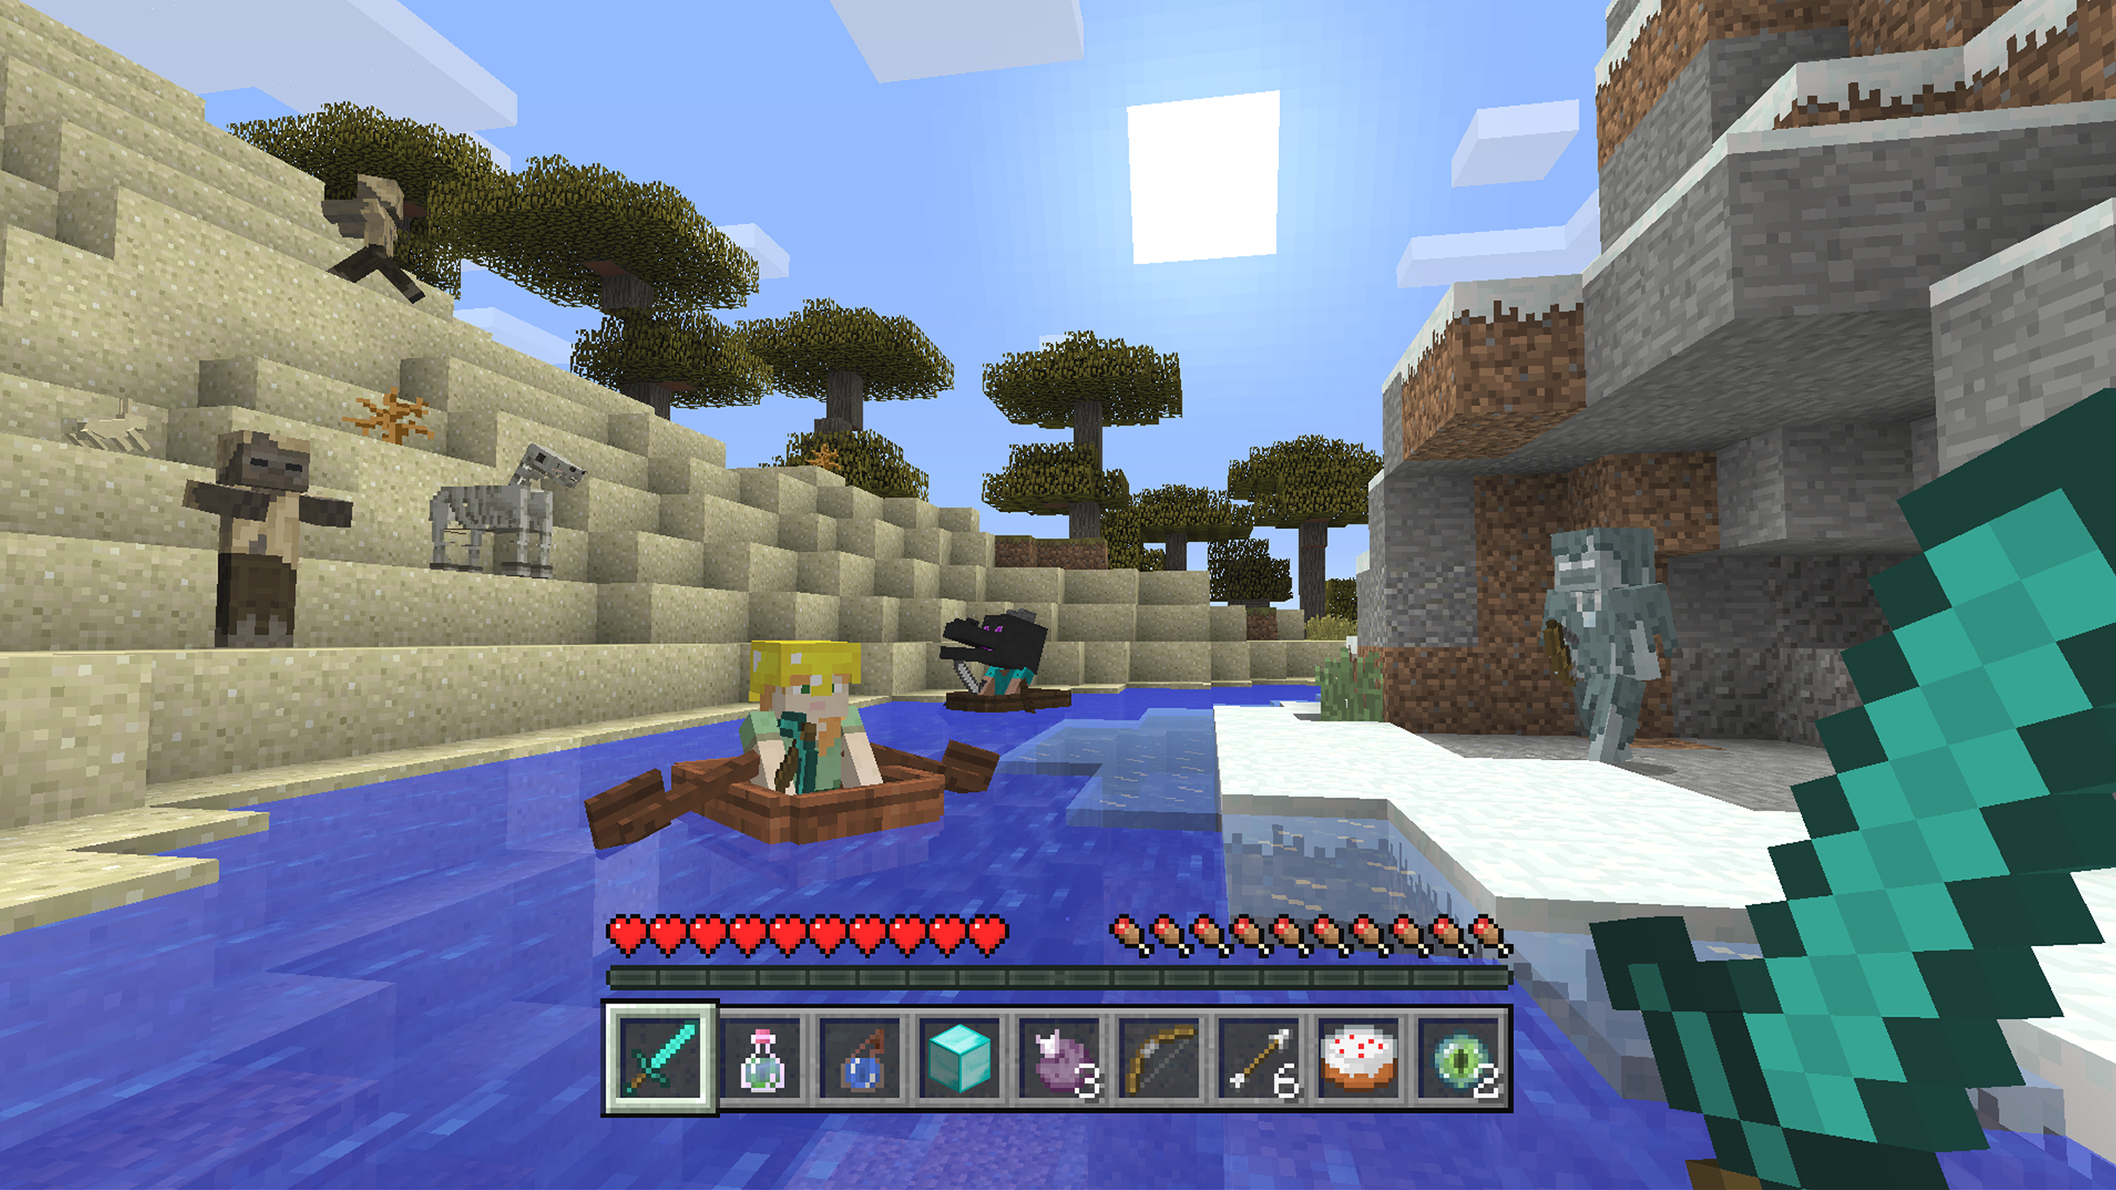 Minecraft screenshot of character in boat